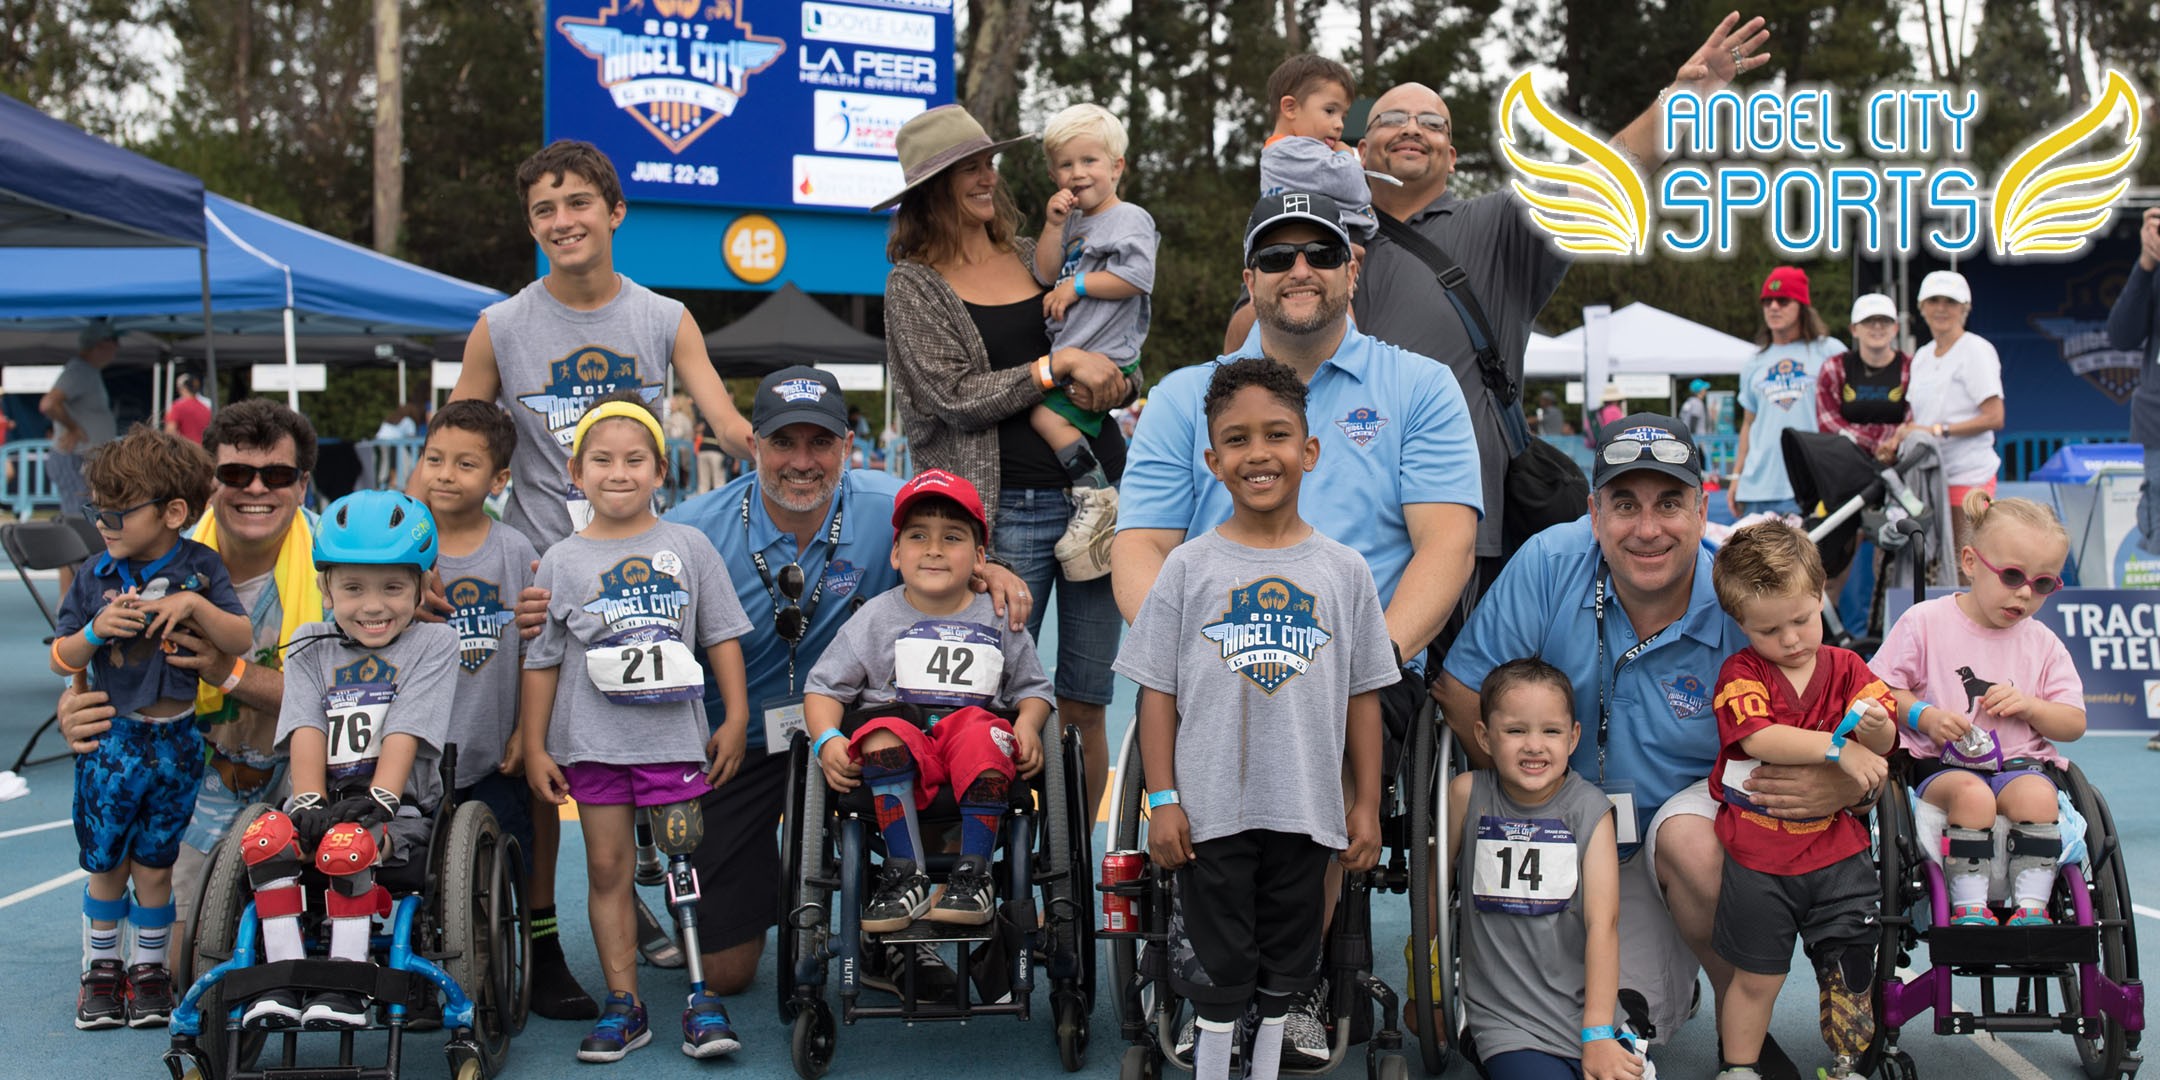 Athletes who participated in the Toddler events at the 2017 Angel City Games at UCLA (Photo Credit:    Tiffany J Photography   )